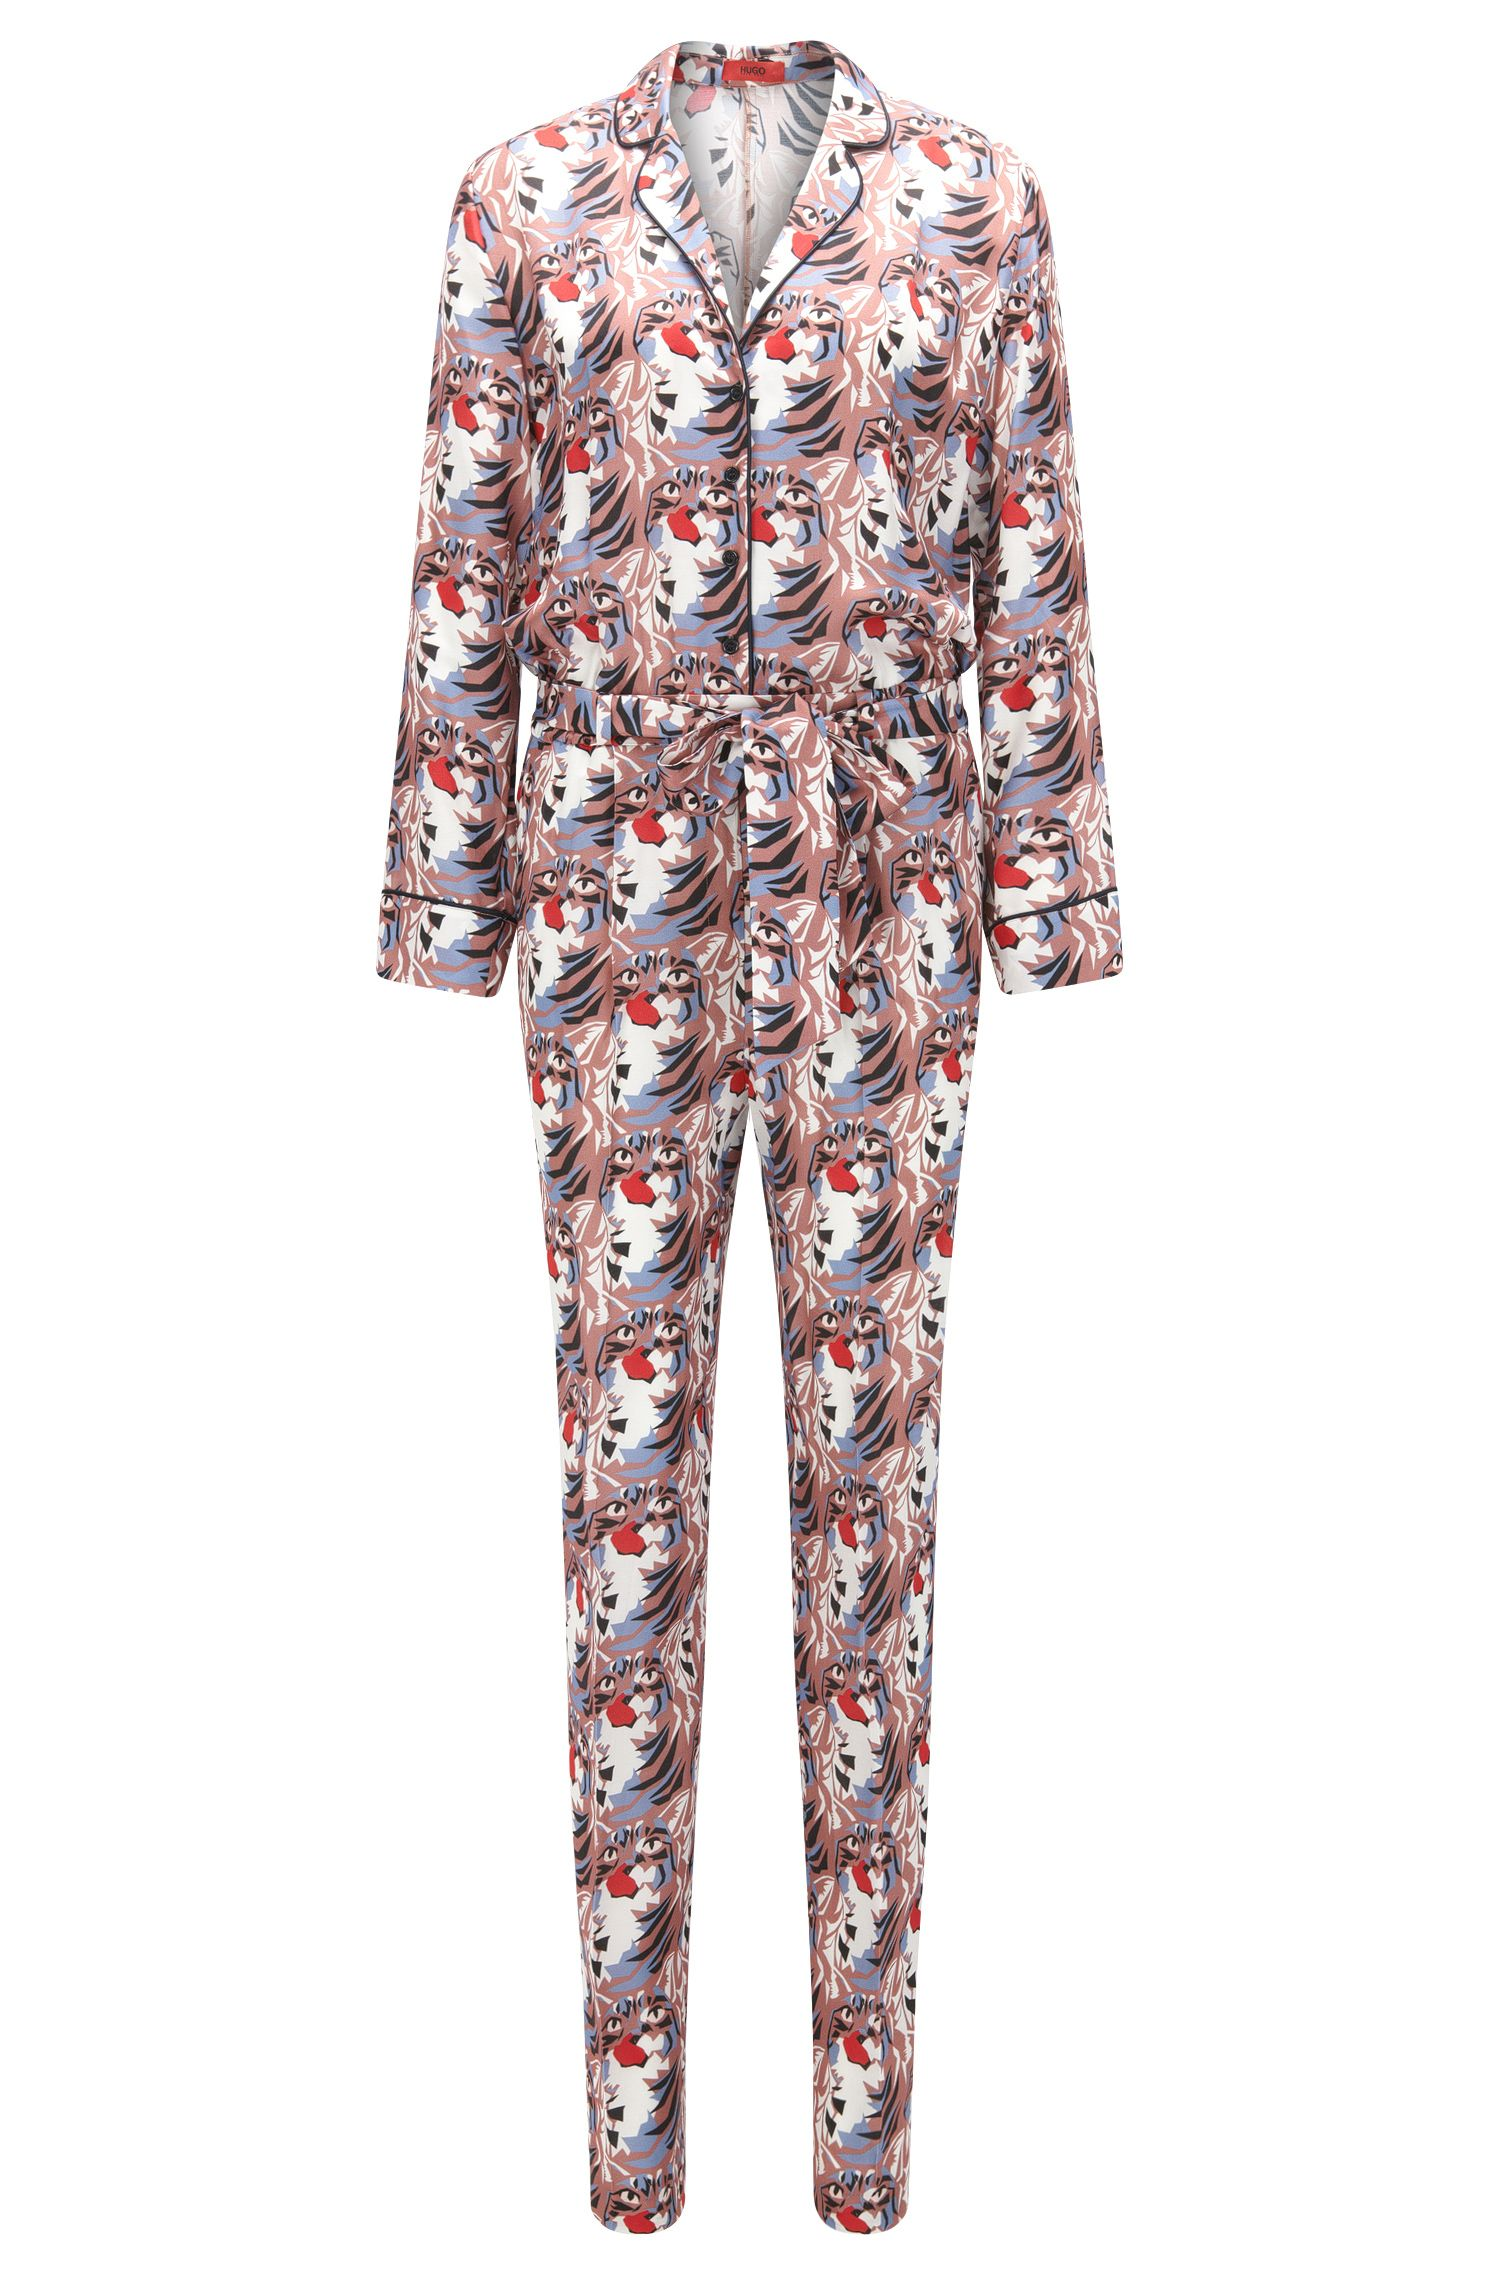 Relaxed-fit silky jumpsuit with cat print